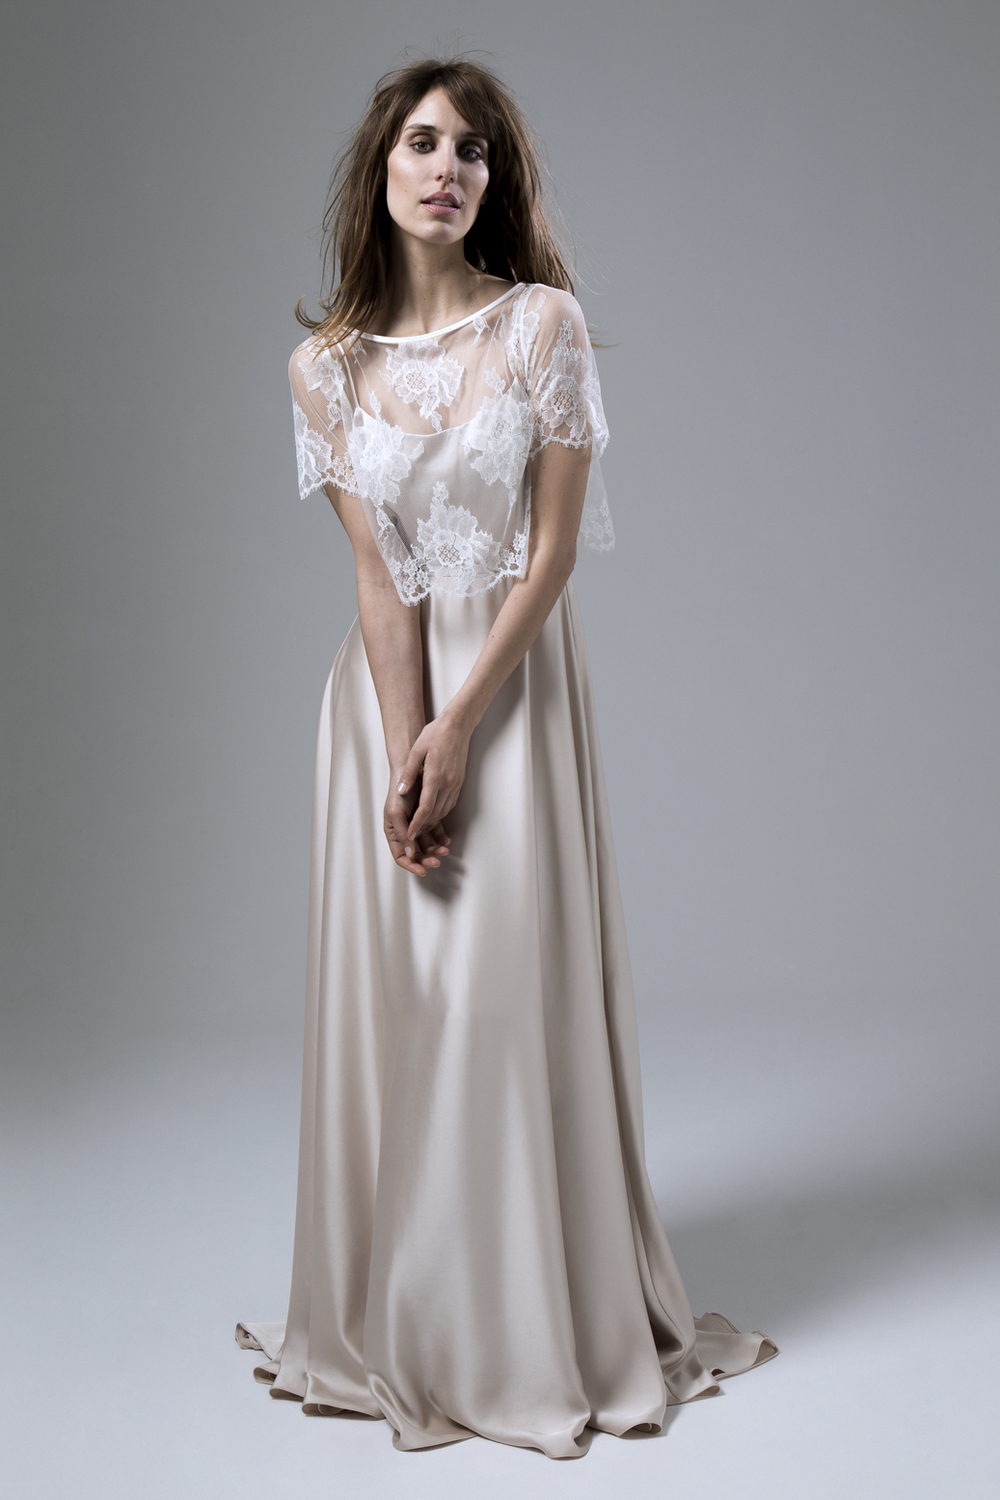 Berry French Lace Jacket and Thea Crepe Back Satin Backless Wedding Dress by Halfpenny London